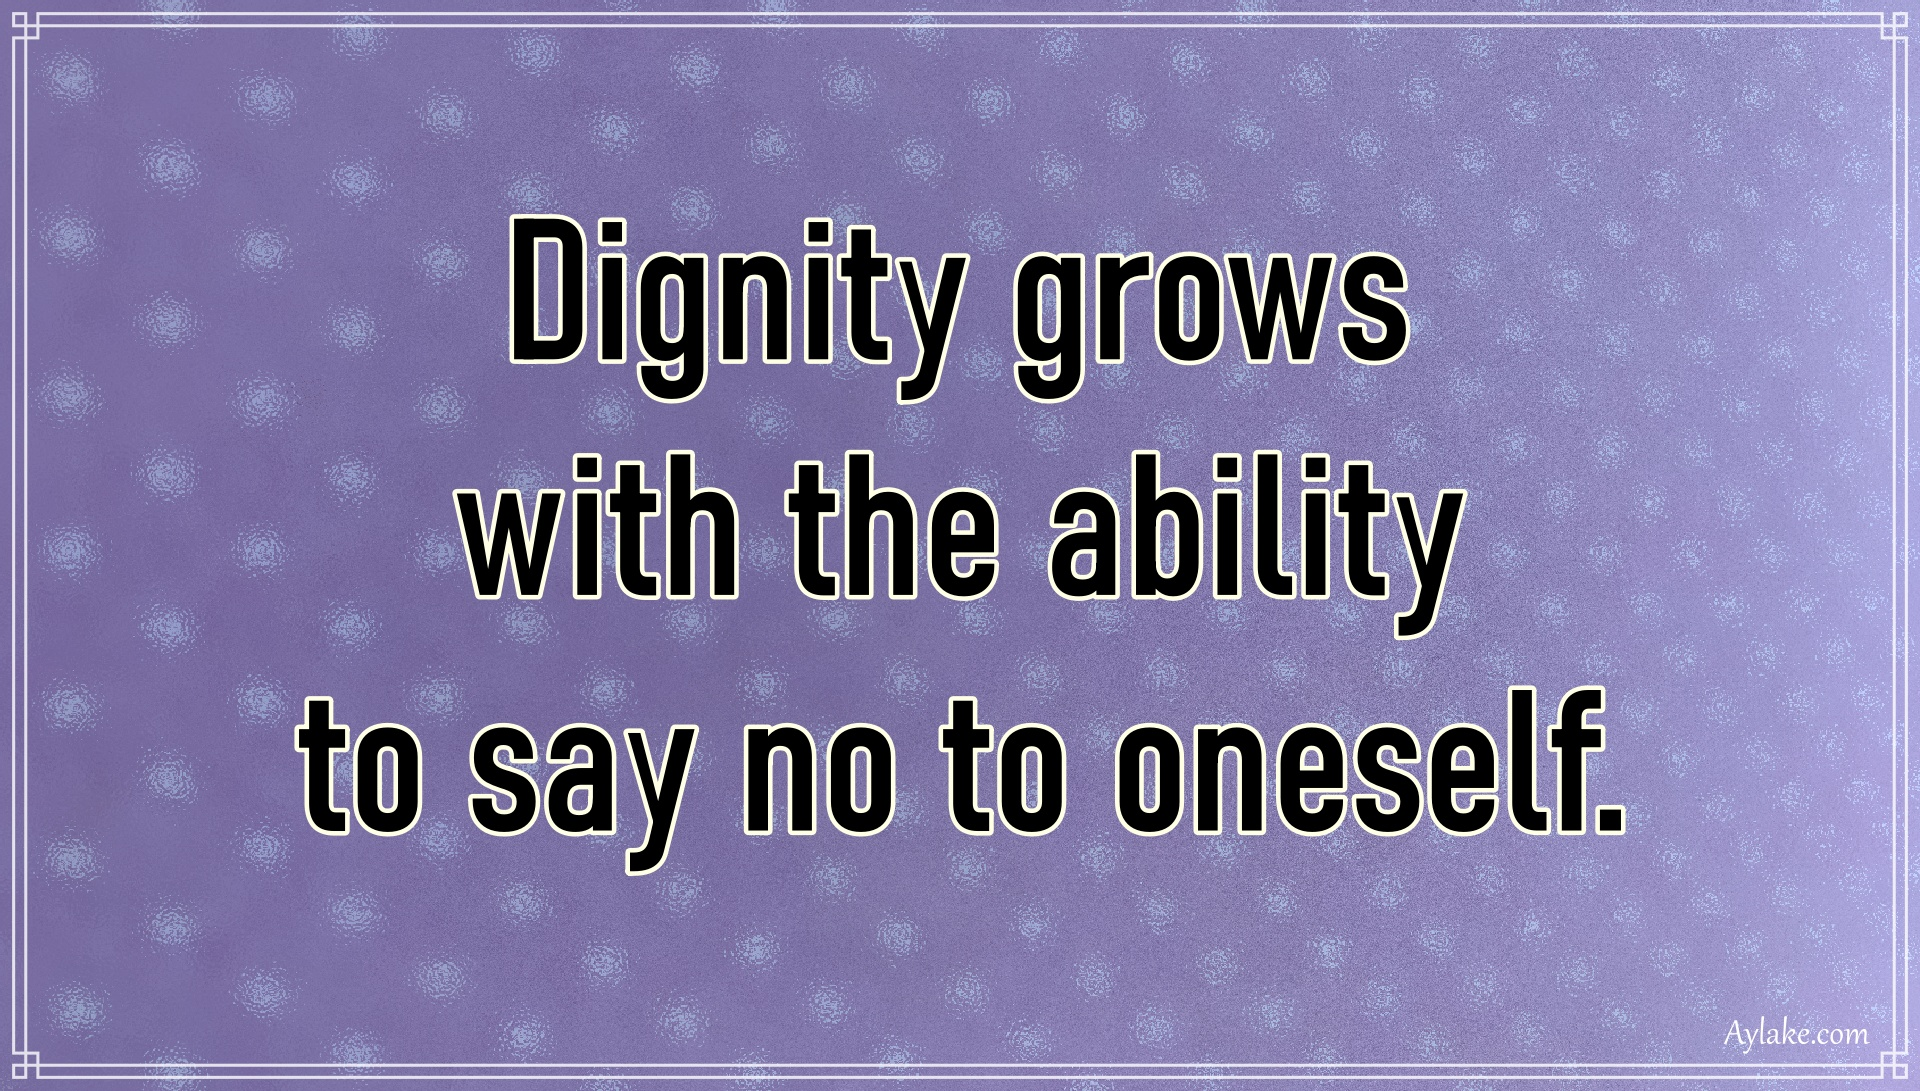 Discipline quotes Diginity grows with the ability to say no to oneself Aylake